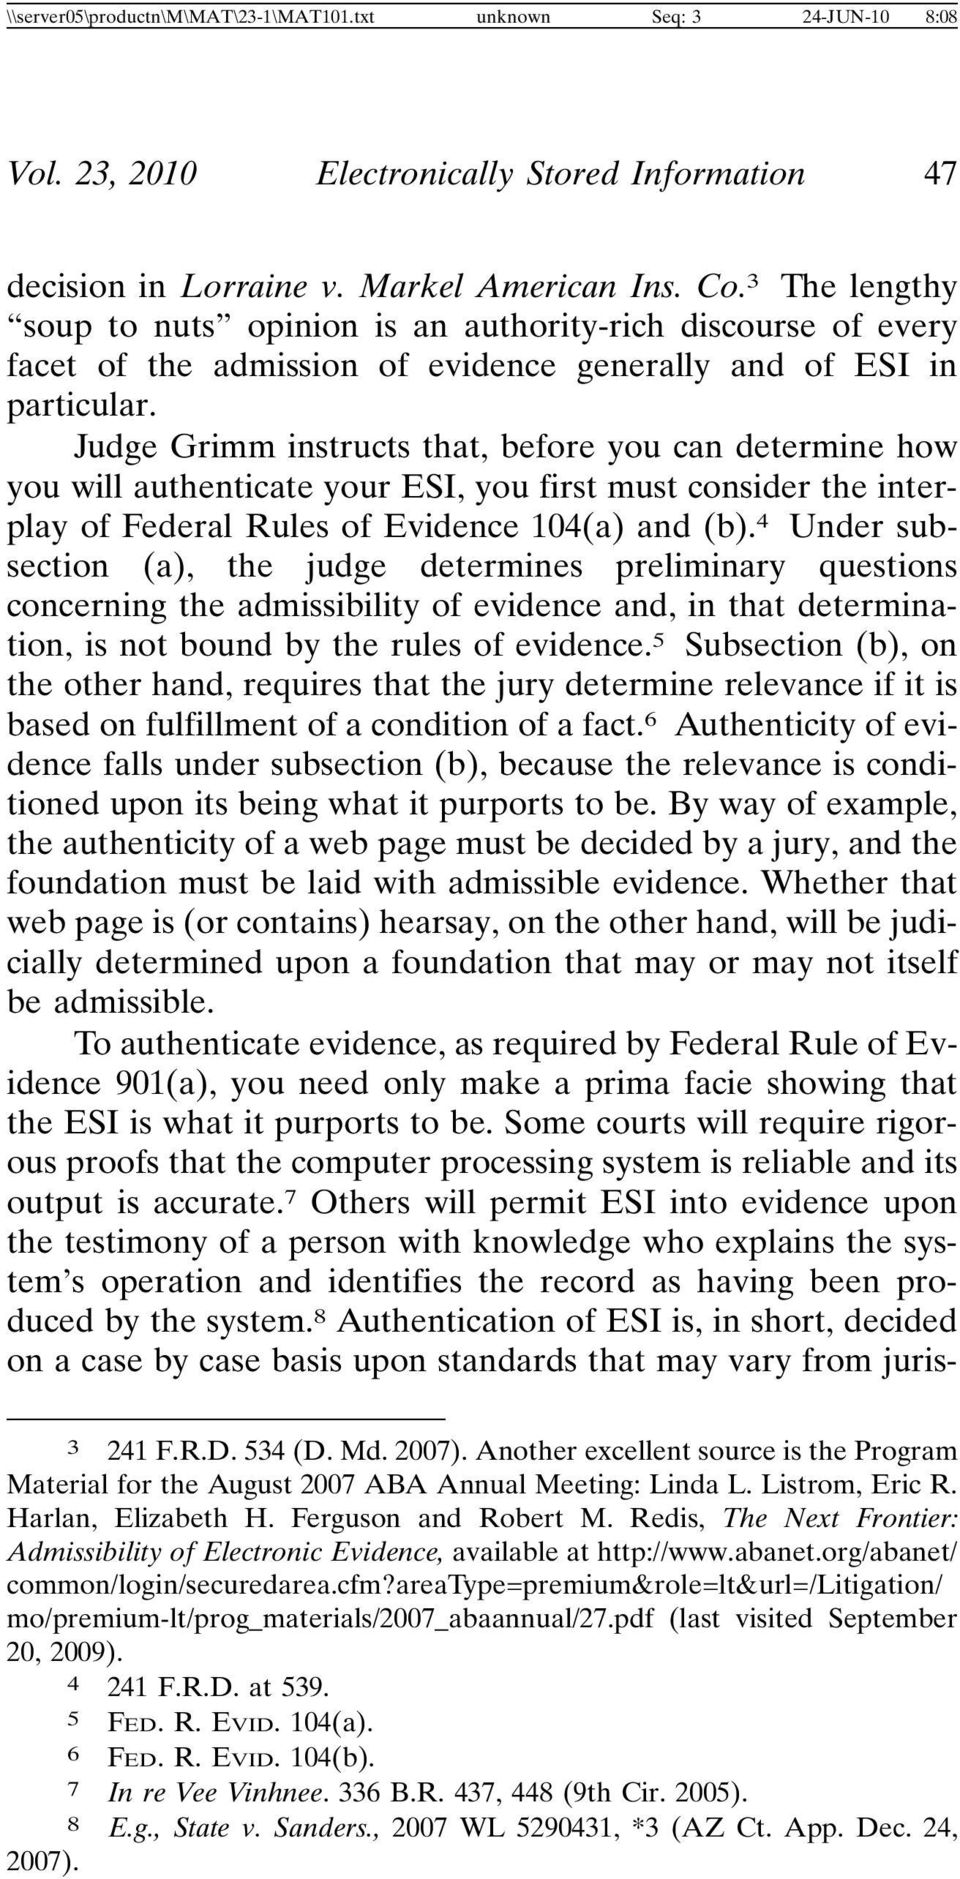 Judge Grimm instructs that, before you can determine how you will authenticate your ESI, you first must consider the interplay of Federal Rules of Evidence 104(a) and (b).